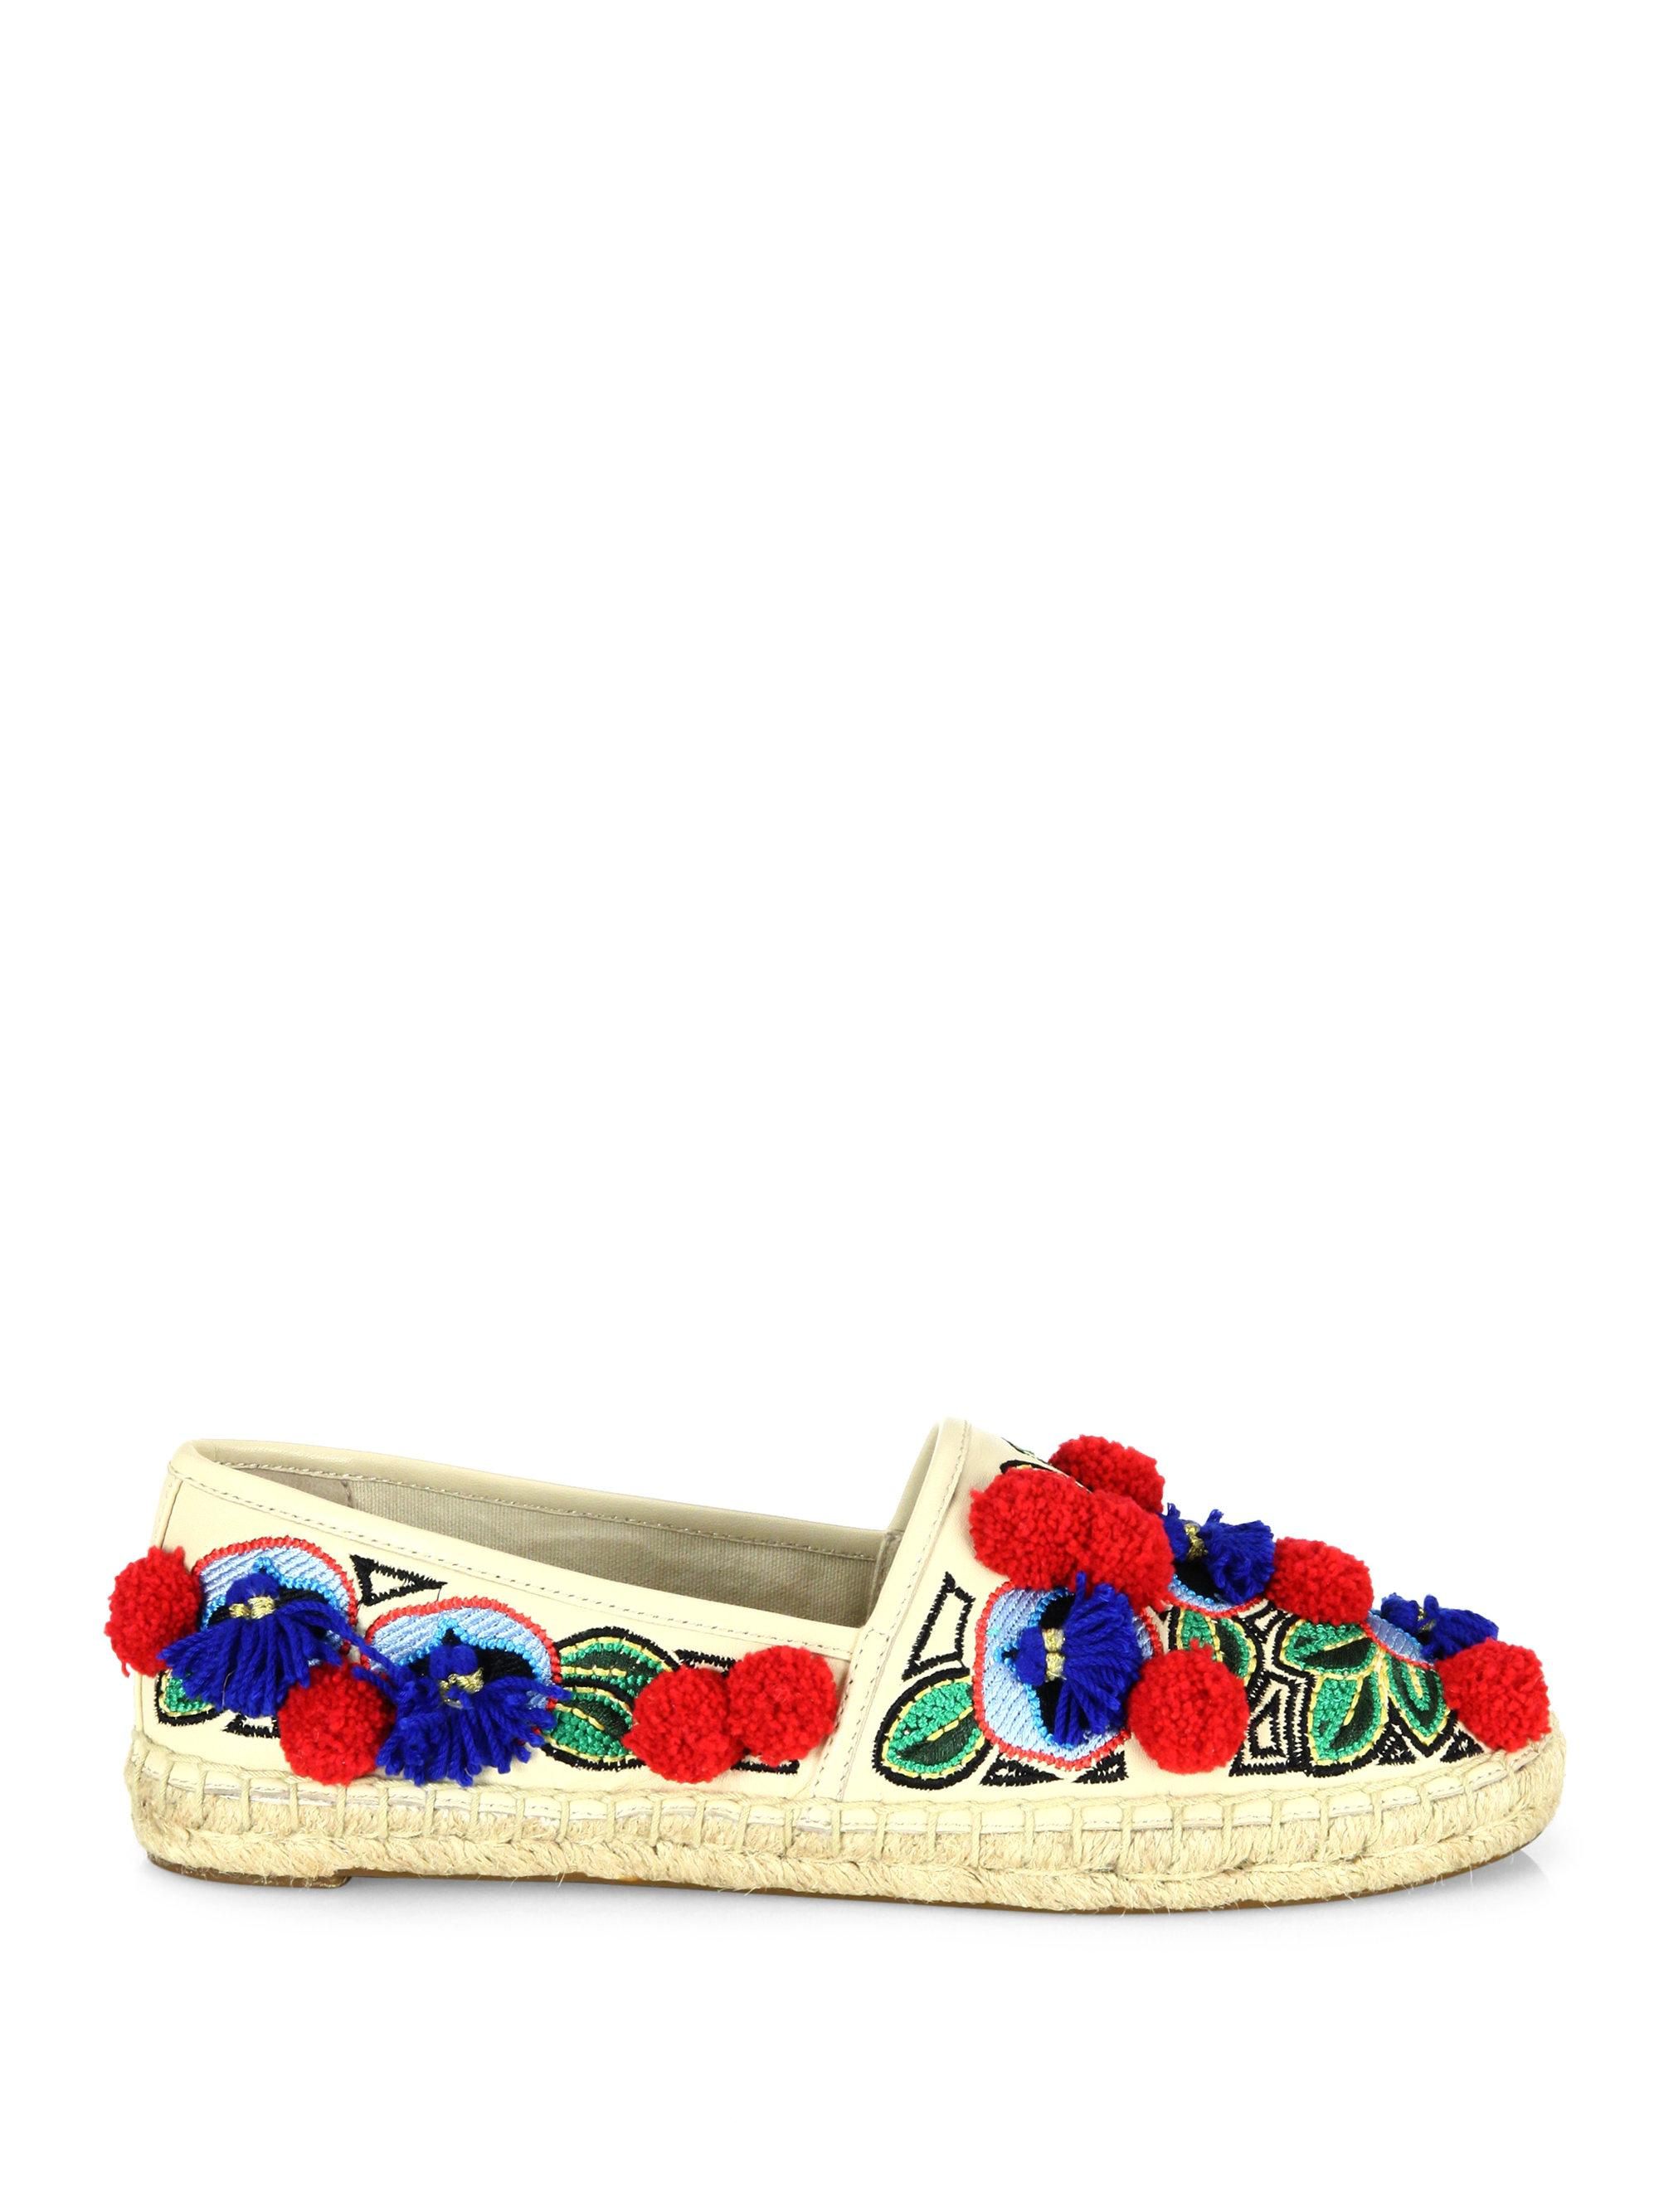 Tory Burch Ellis Pom Pom Embroidered Leather Espadrille